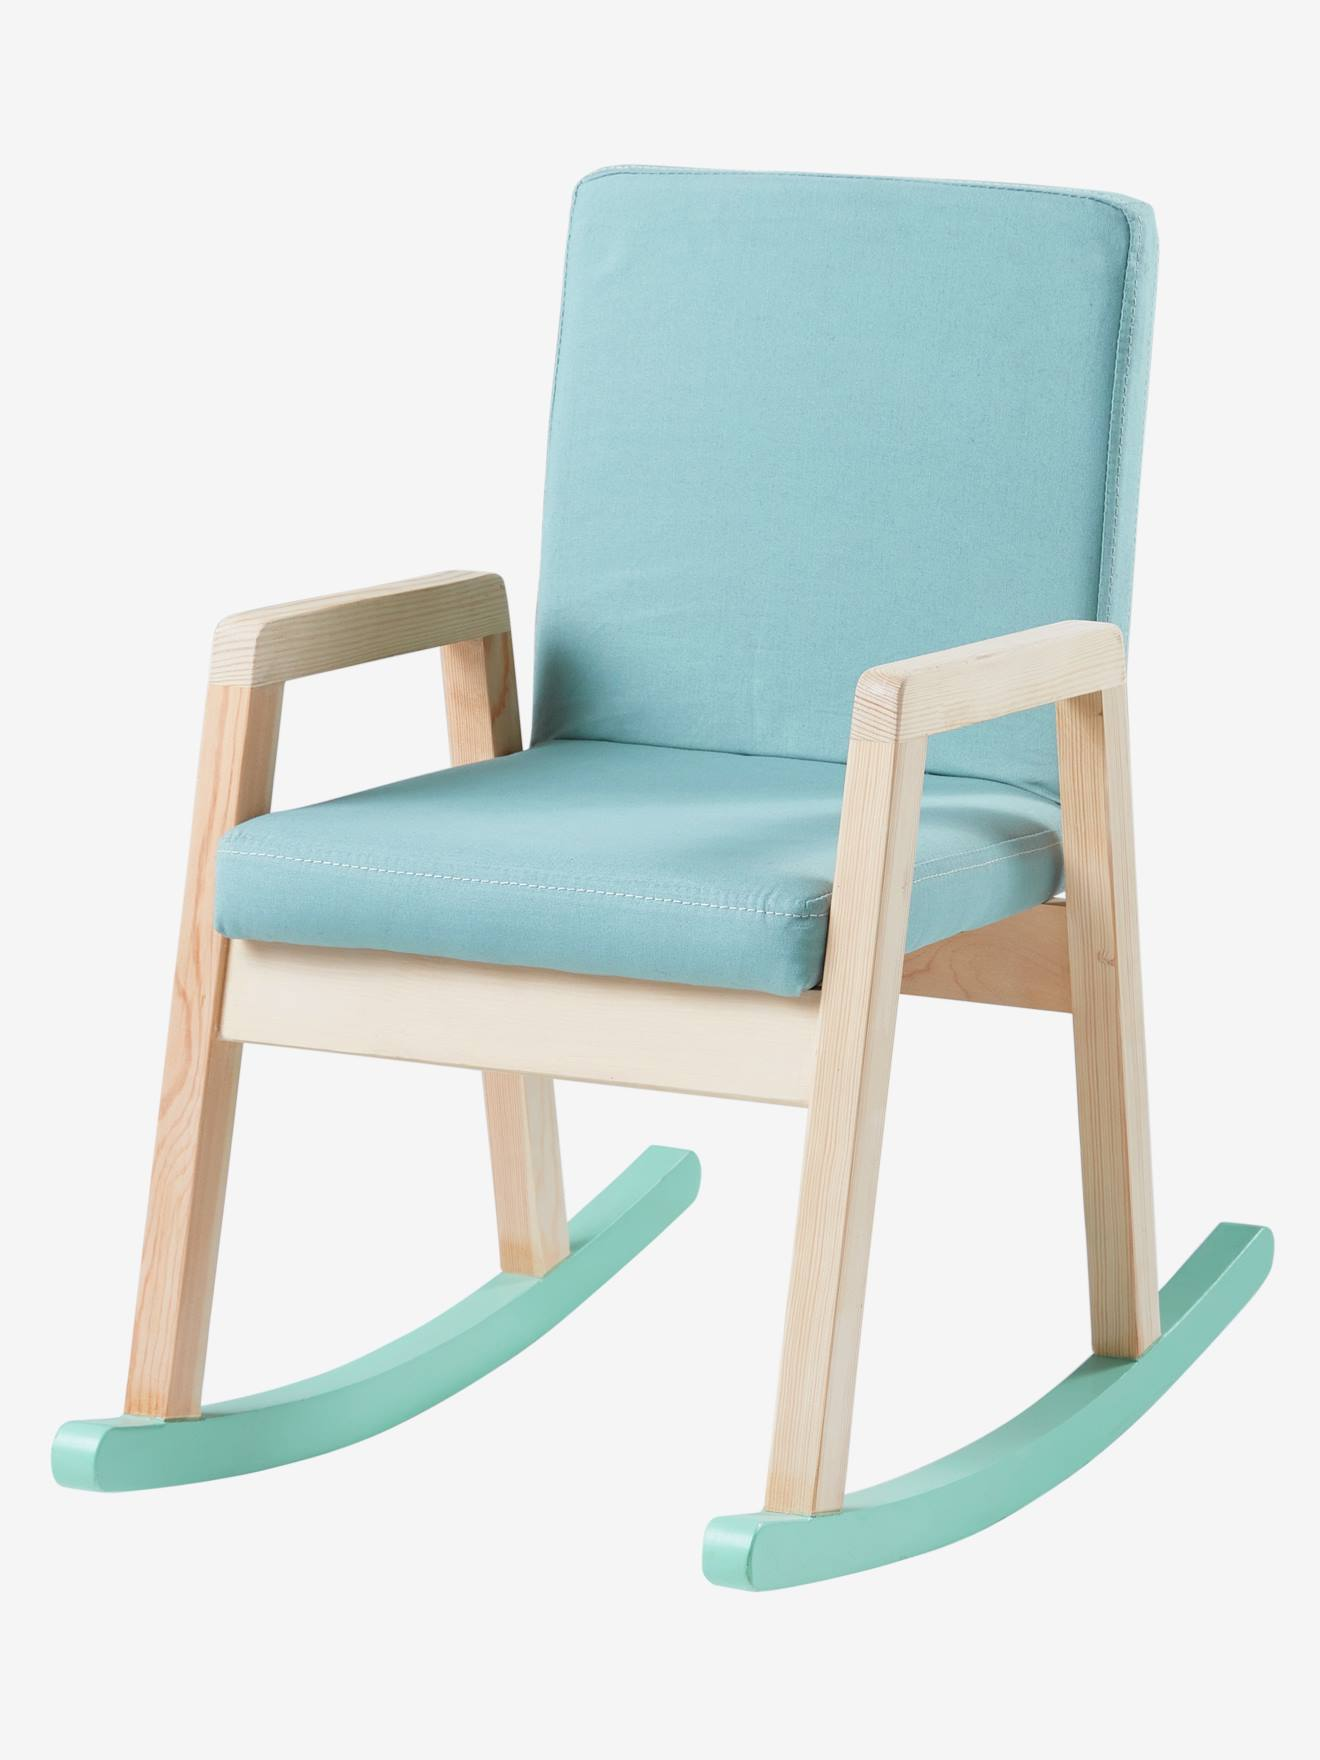 Rocking Chair In Wood Green Light Solid With Design Bedroom Furniture Storage Vertbaudet